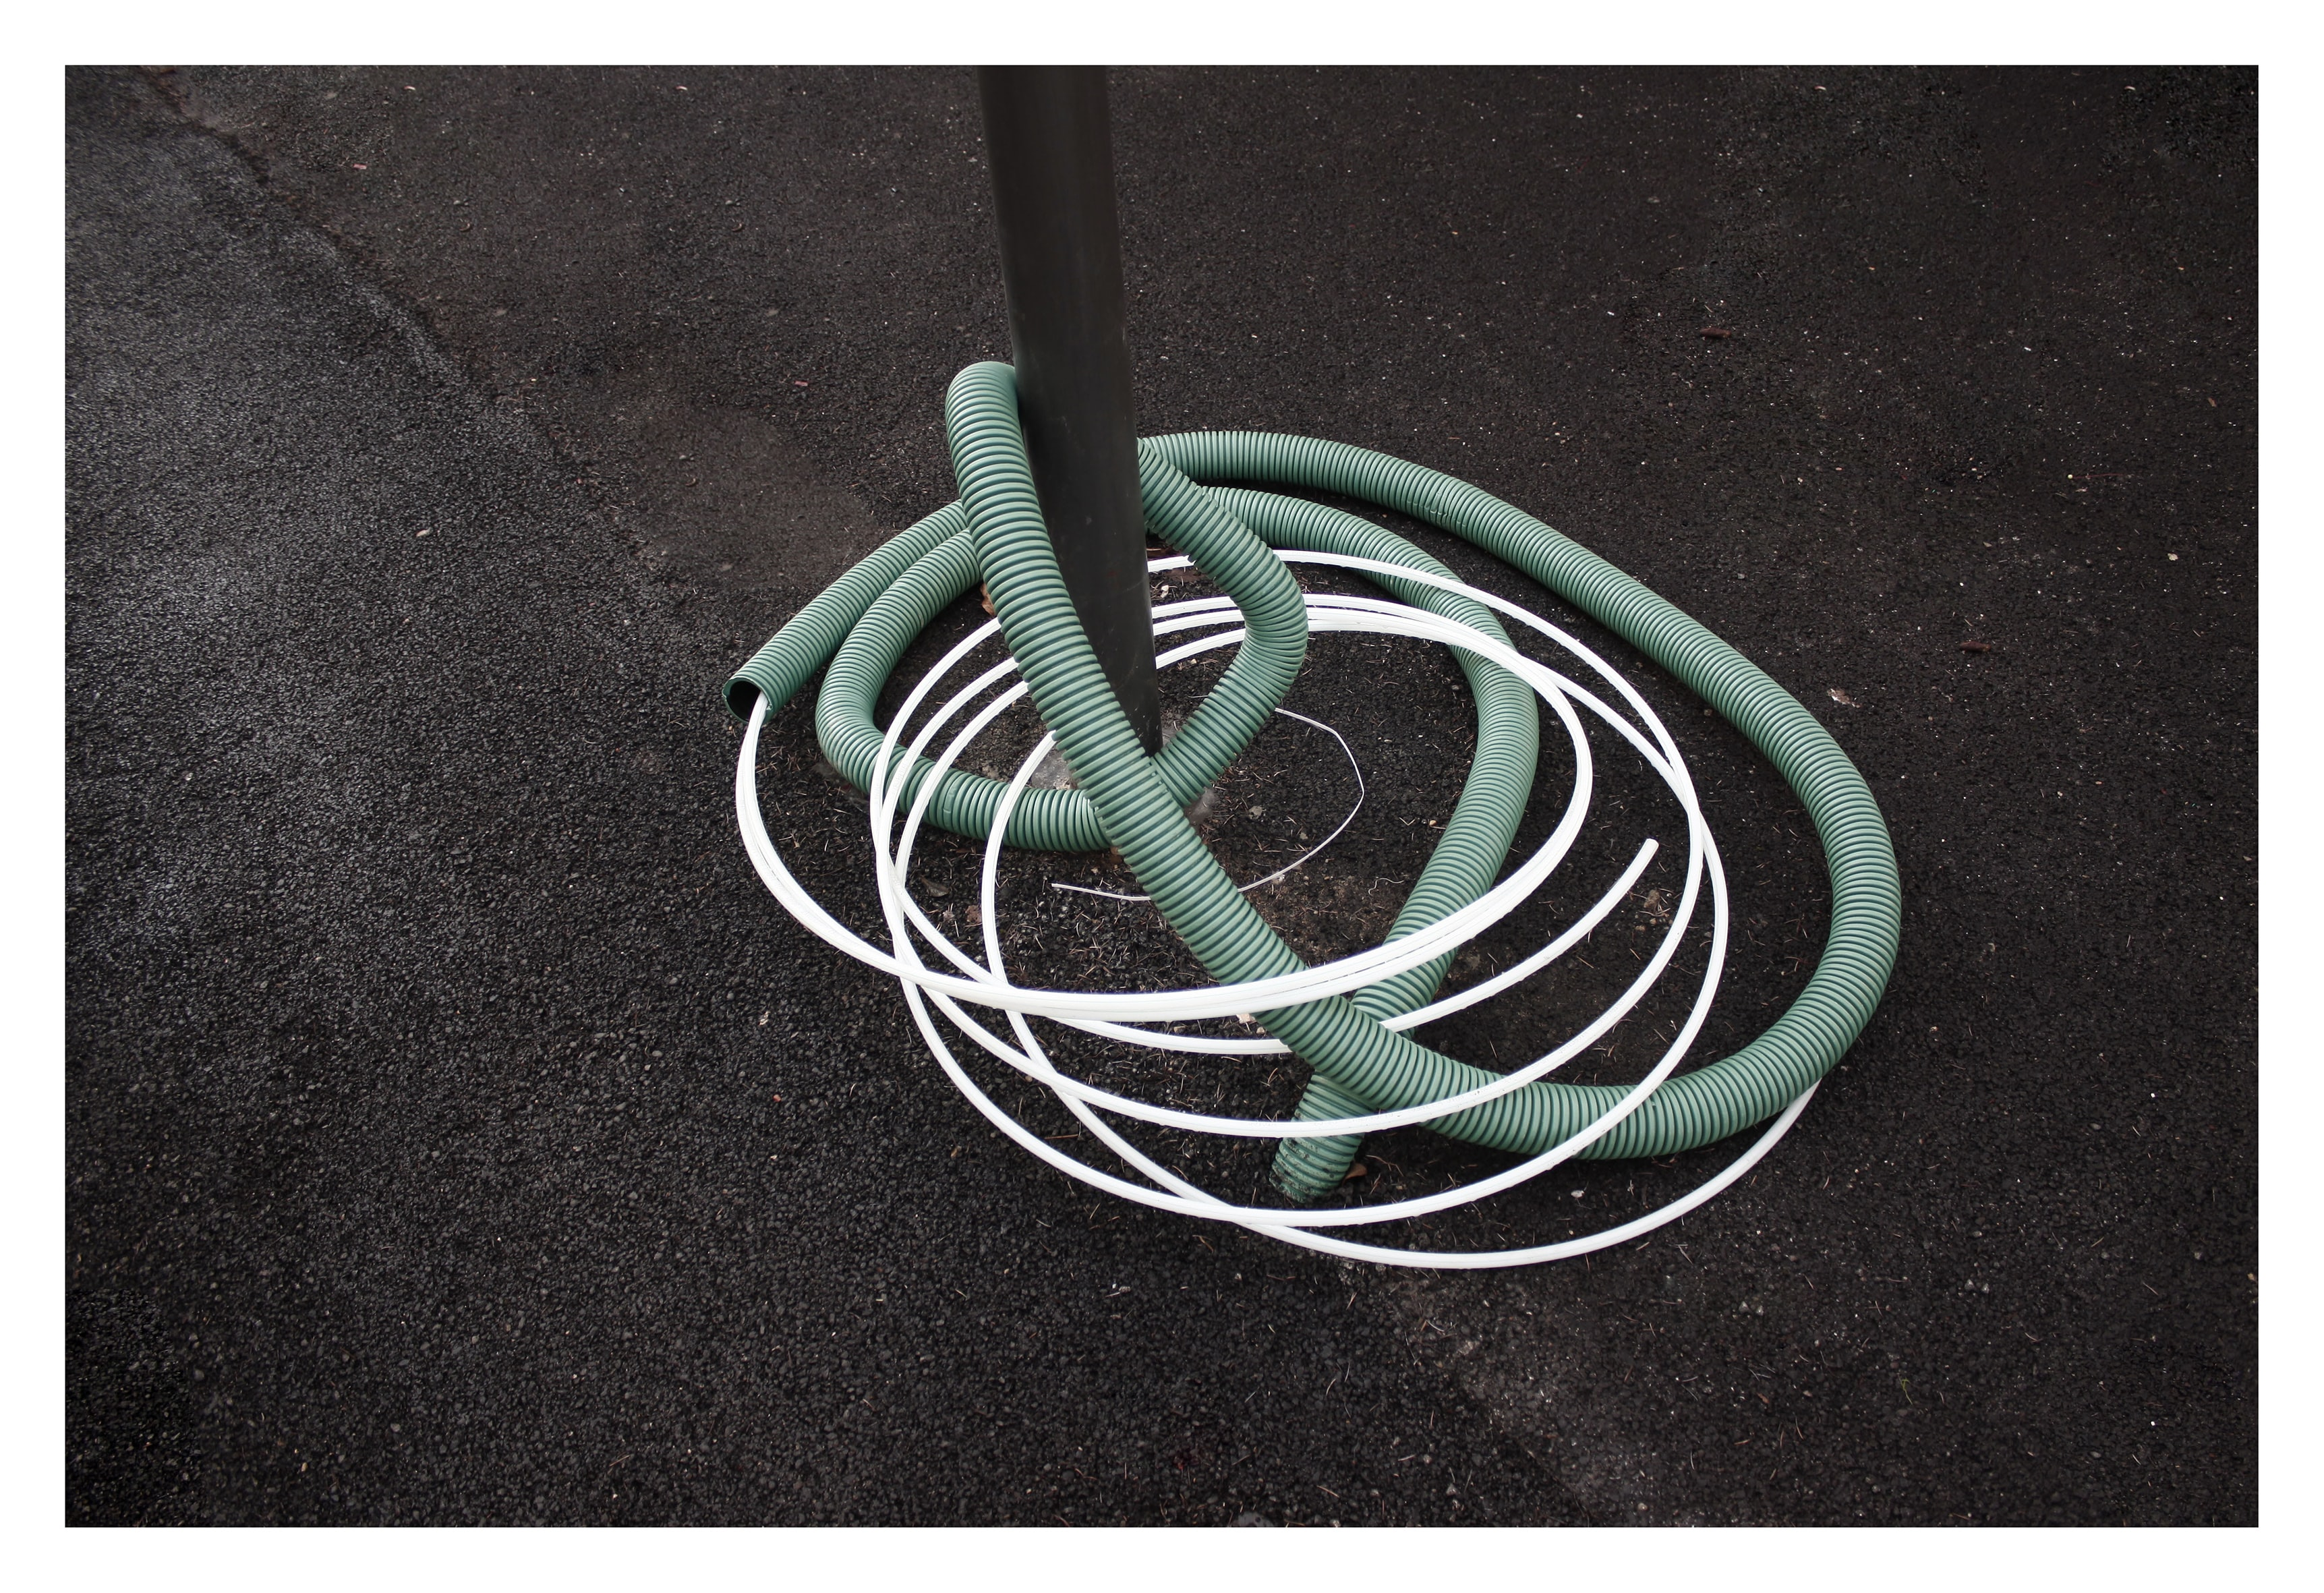 green and white coated cables